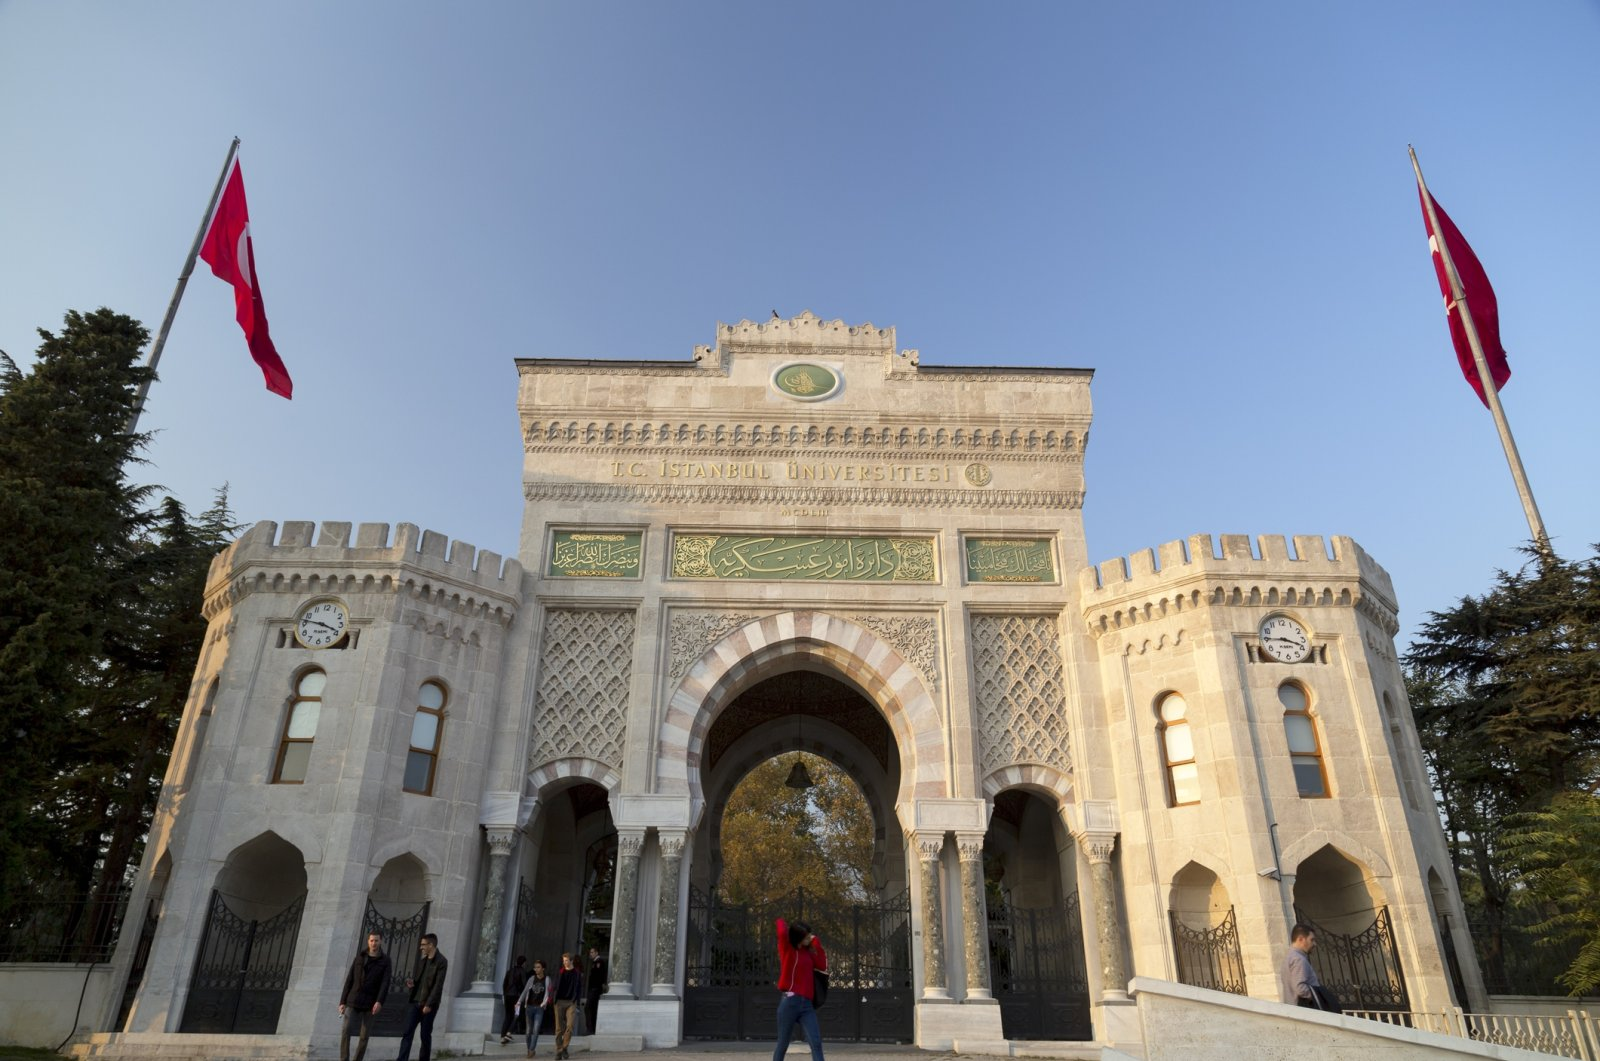 View of the main gate of the historical Istanbul University building located in Beyazıt Square, Istanbul, Turkey, Nov. 12, 2015. (iStock Photo)